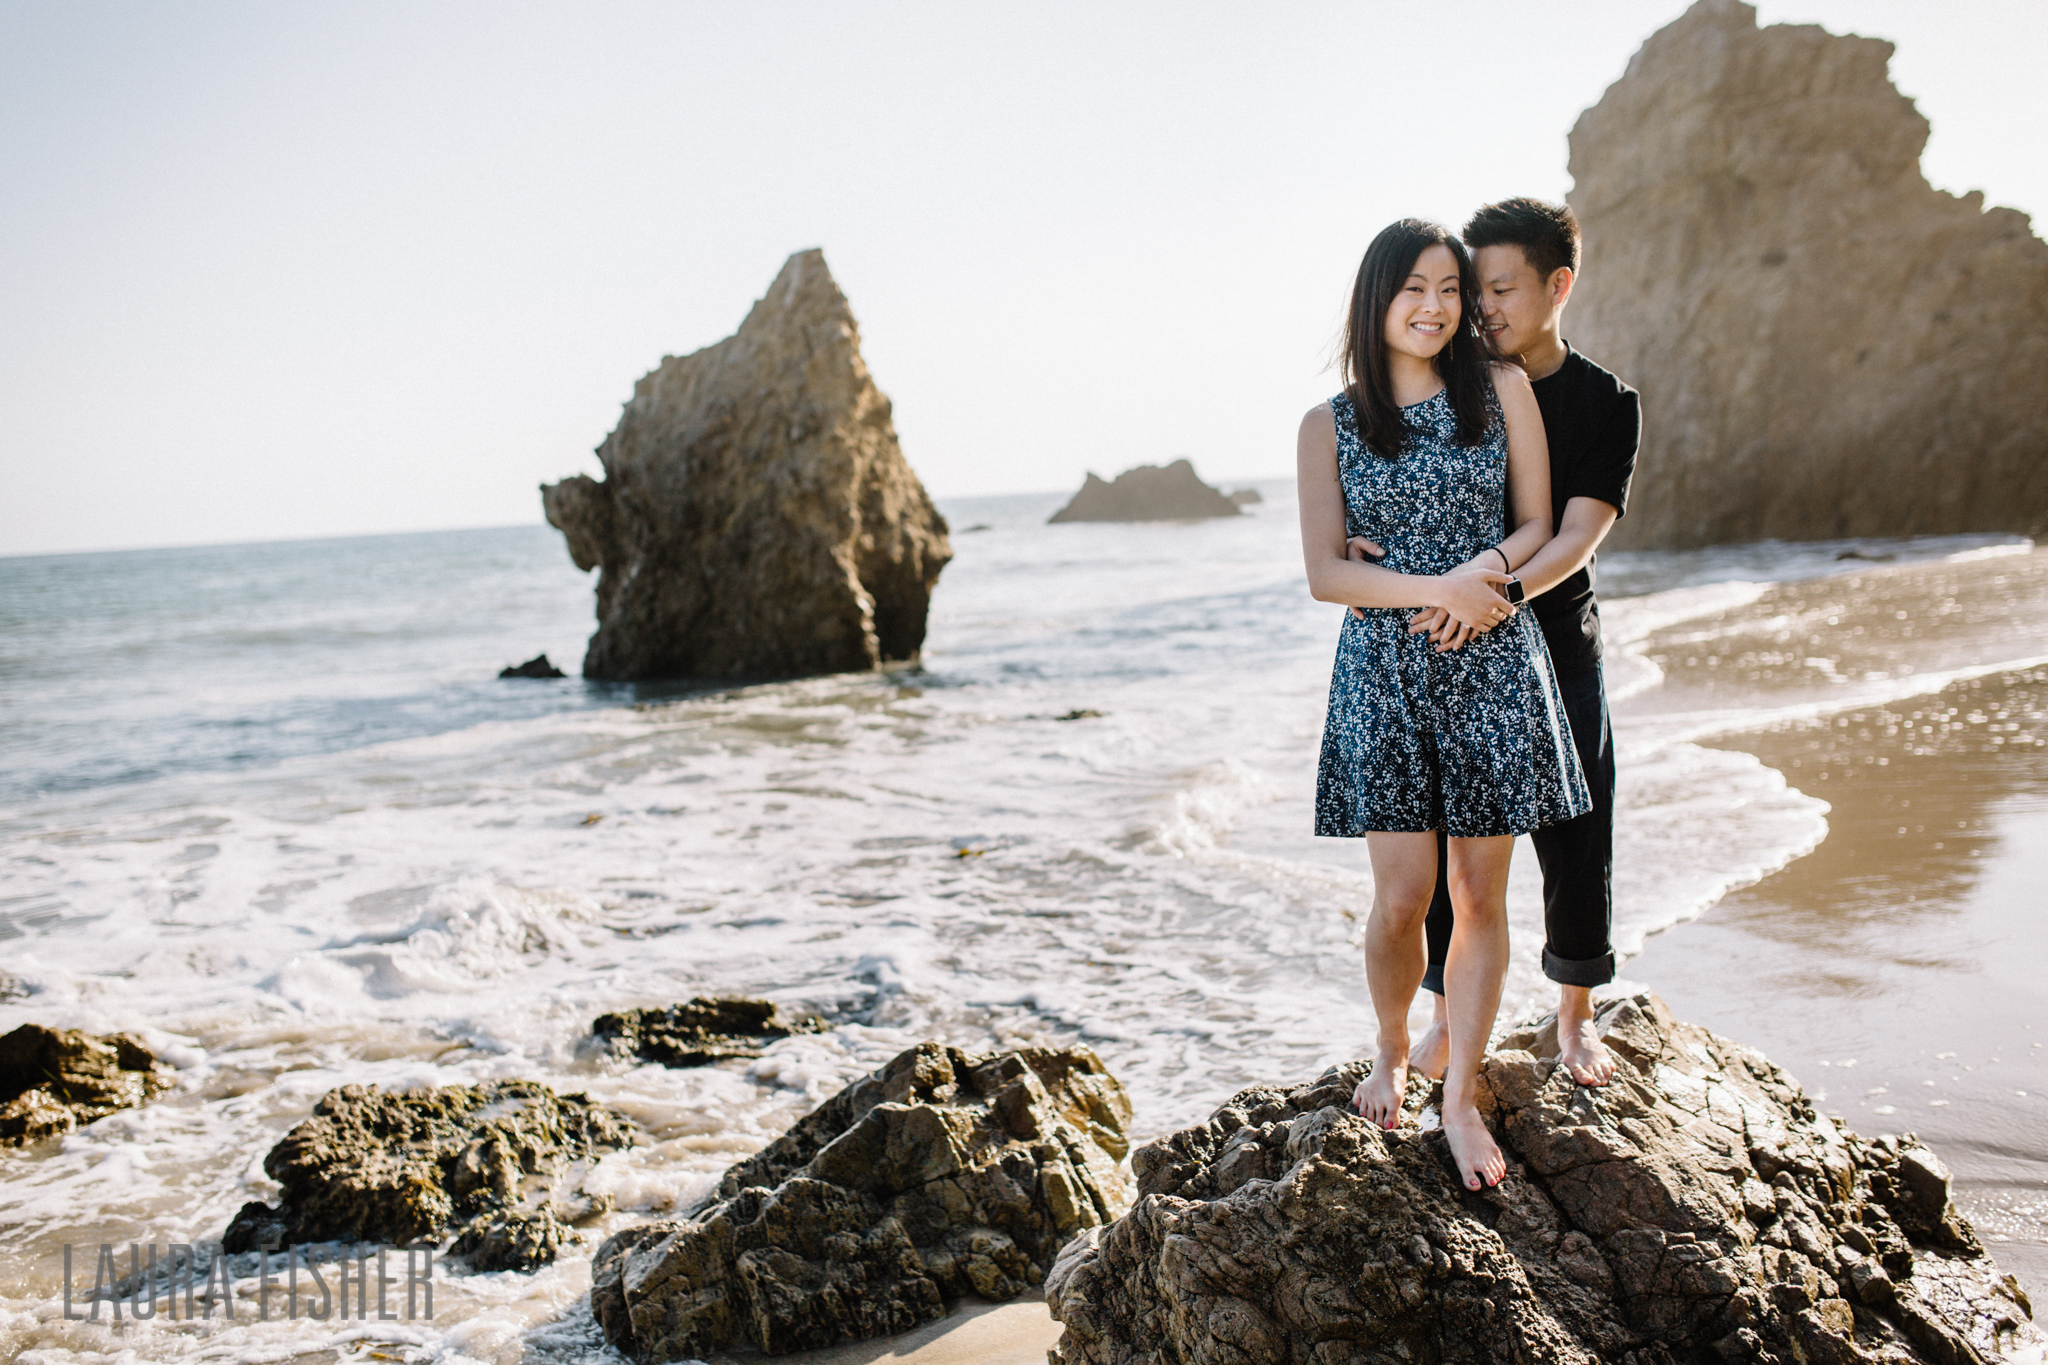 malibu-california-wedding-el-matador-beach-laura-fisher-photography-0014.jpg